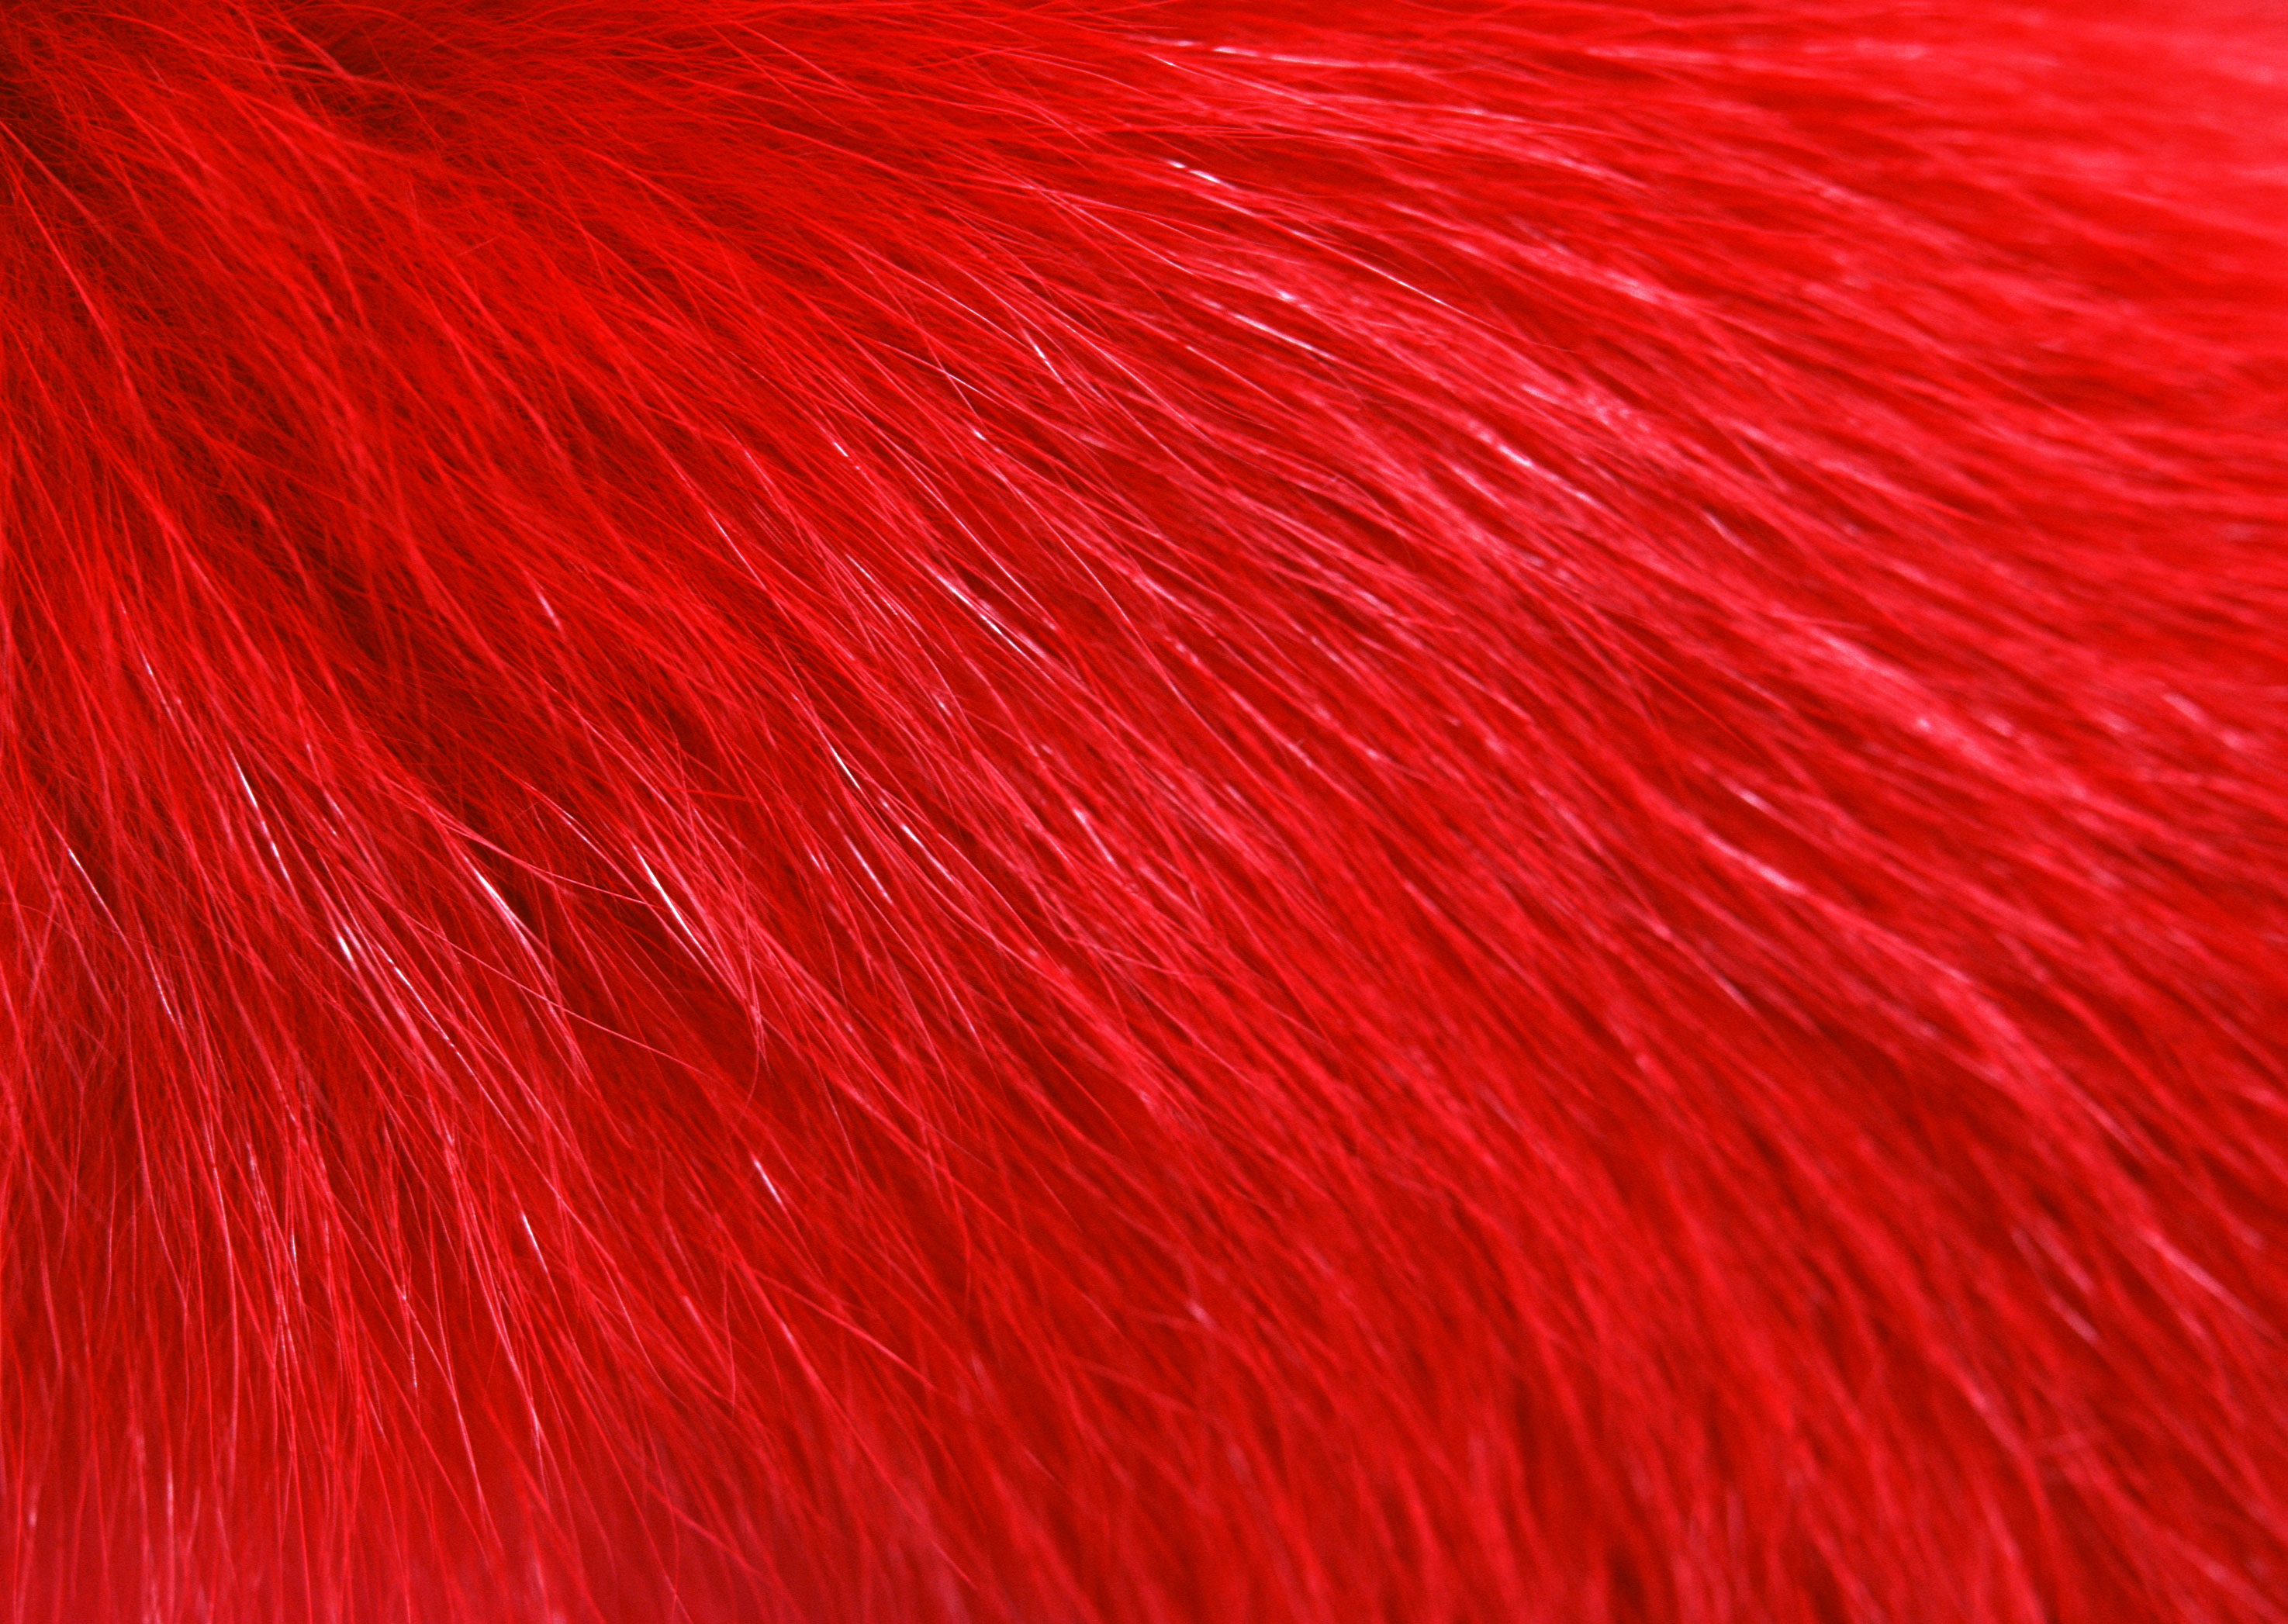 Red fur texture background image